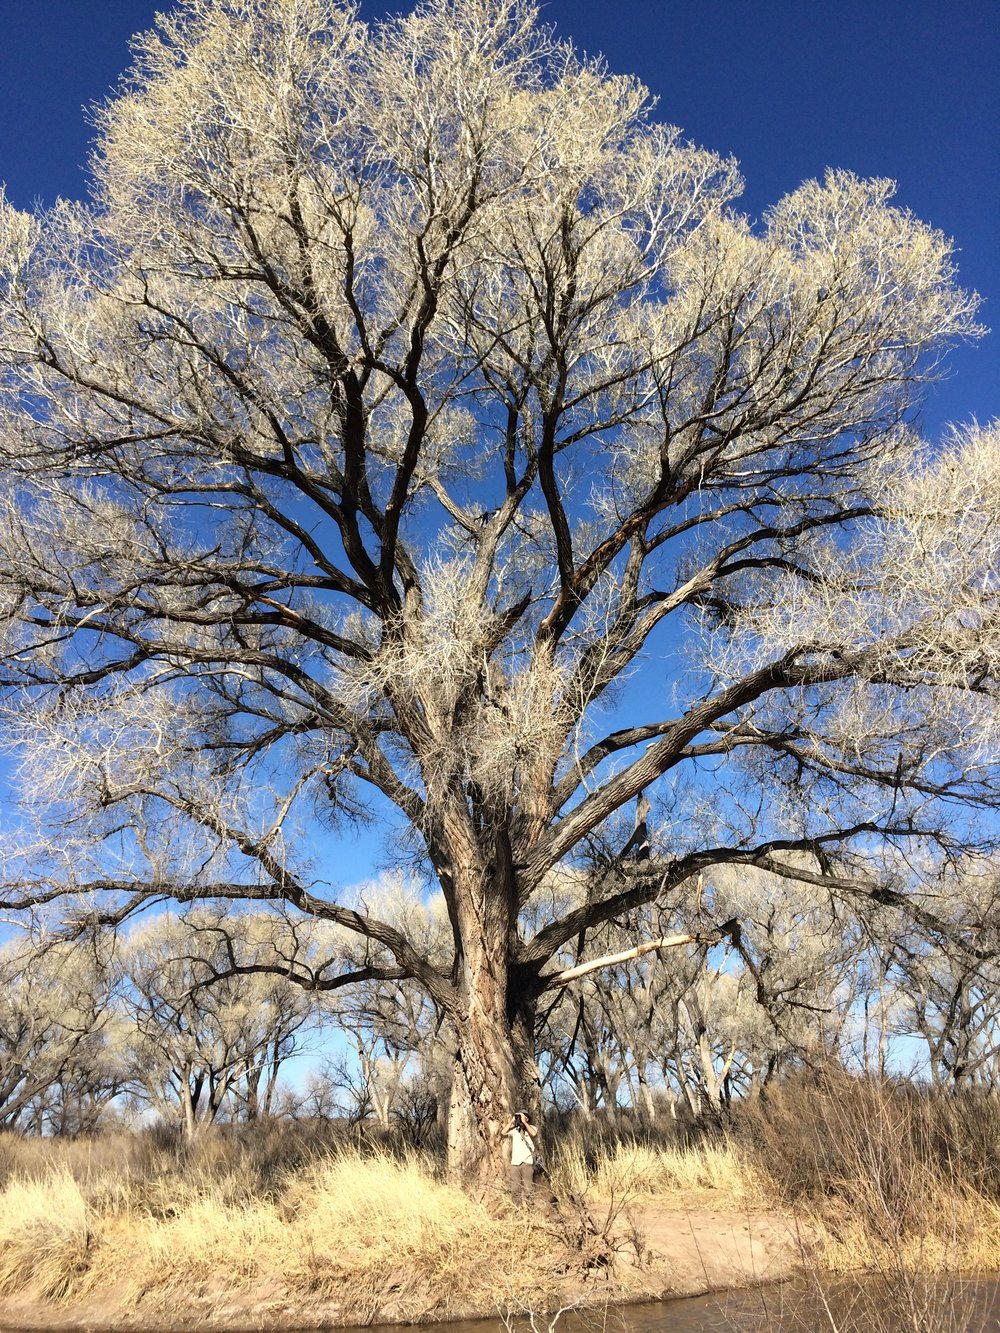 The biggest cottonwood trees I have ever seen at San Pedro River National Riparian Area, Arizona